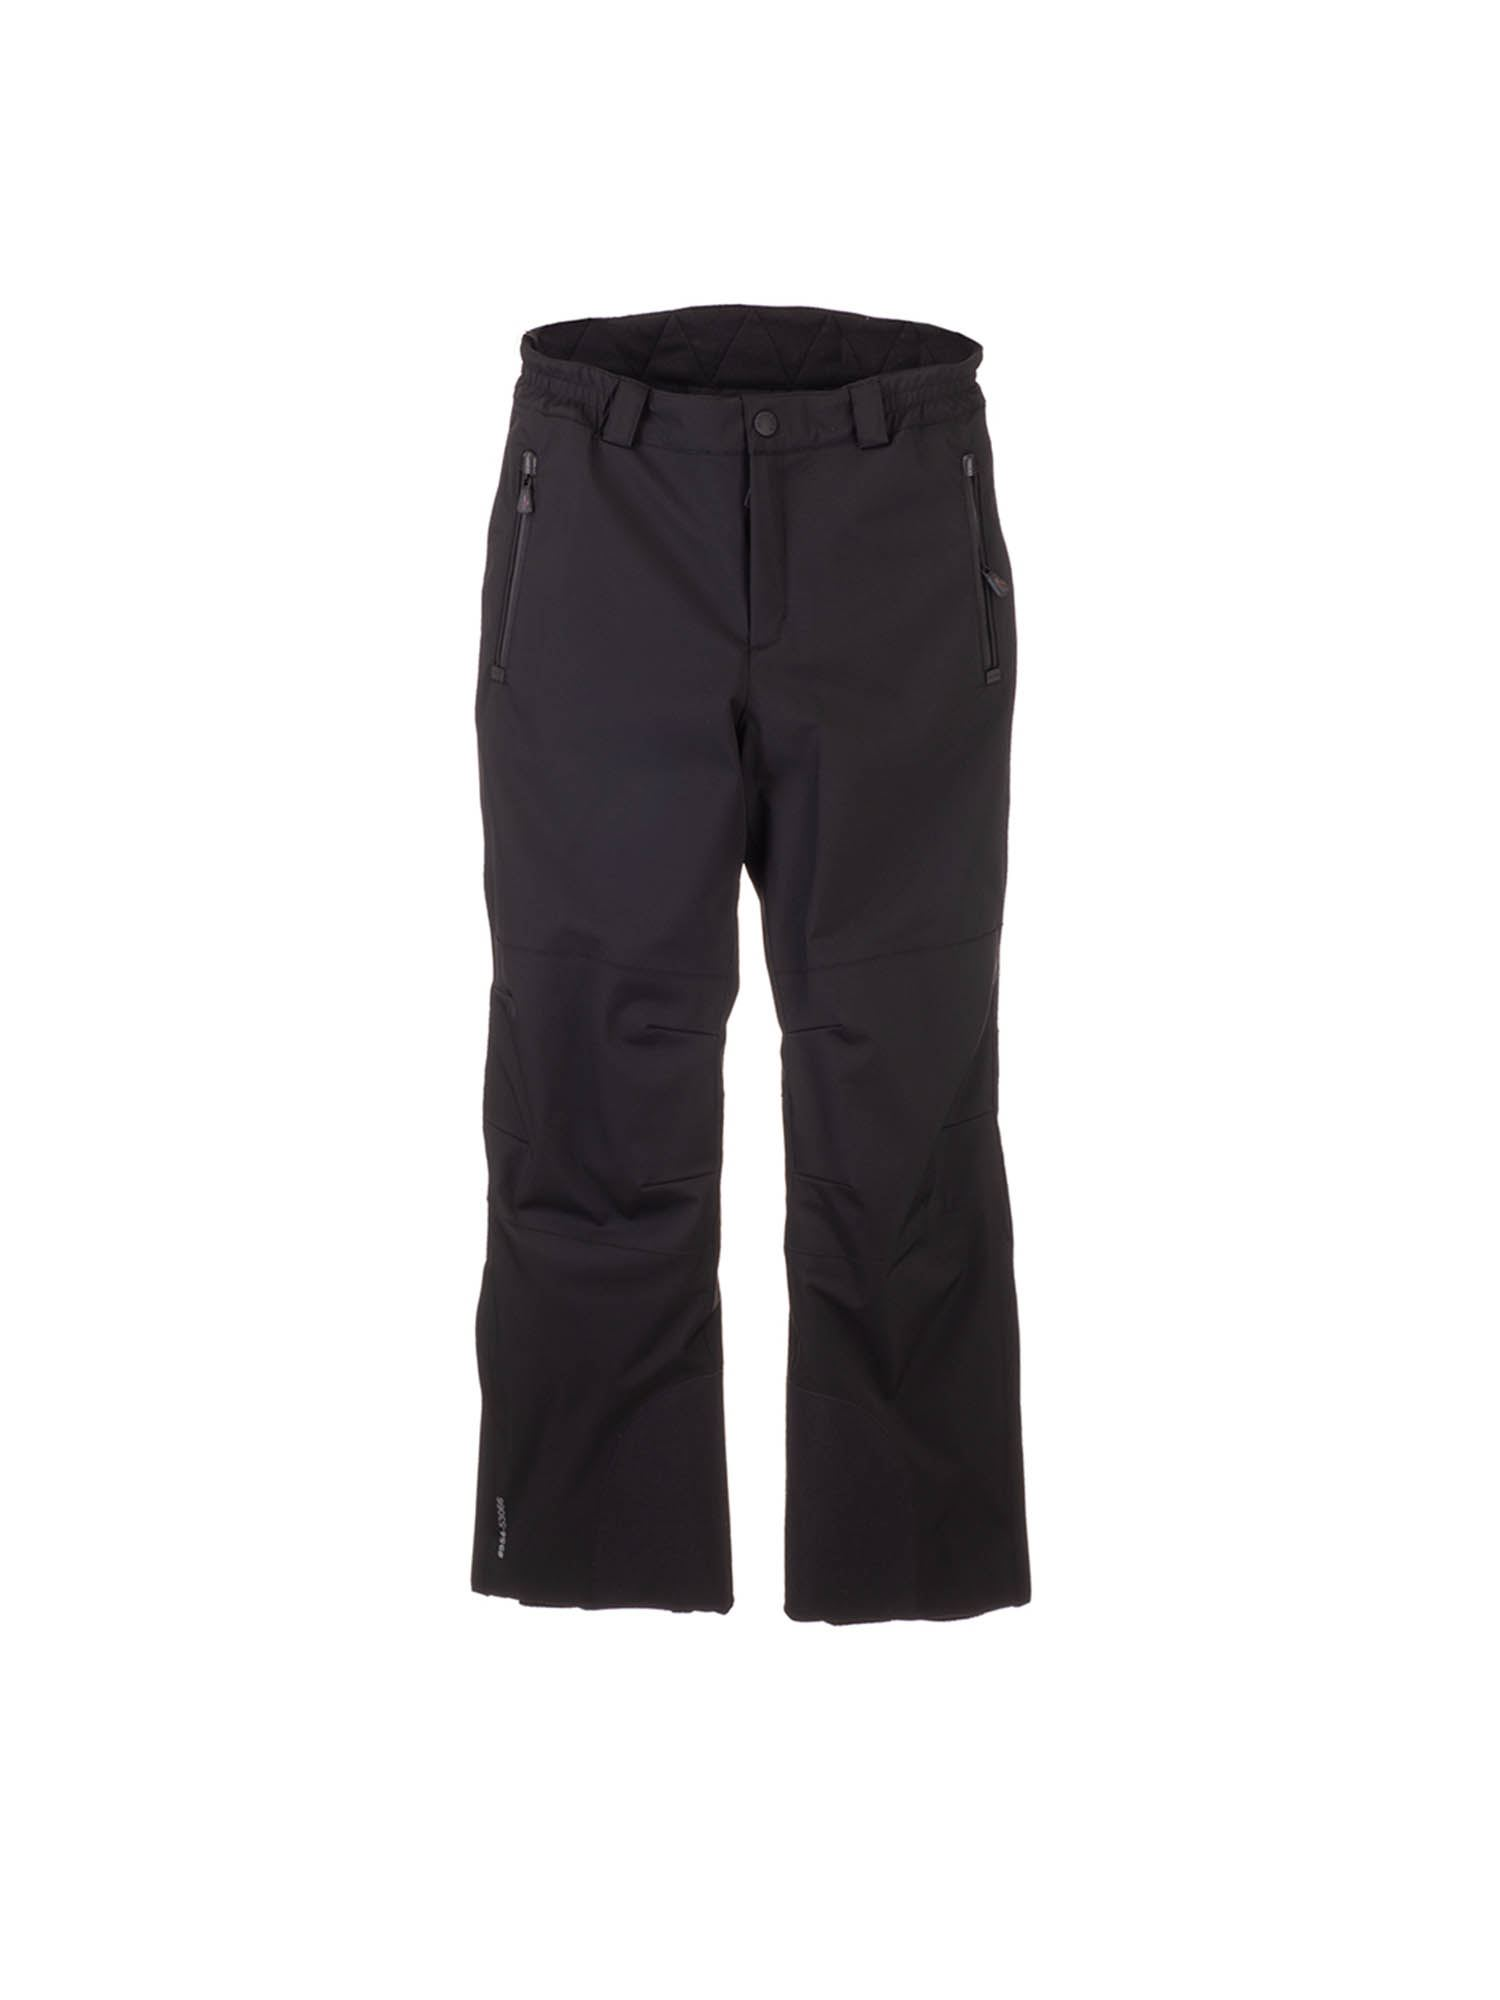 Moncler Jr MONCLER GRENOBLE SKI PANTS IN BLACK